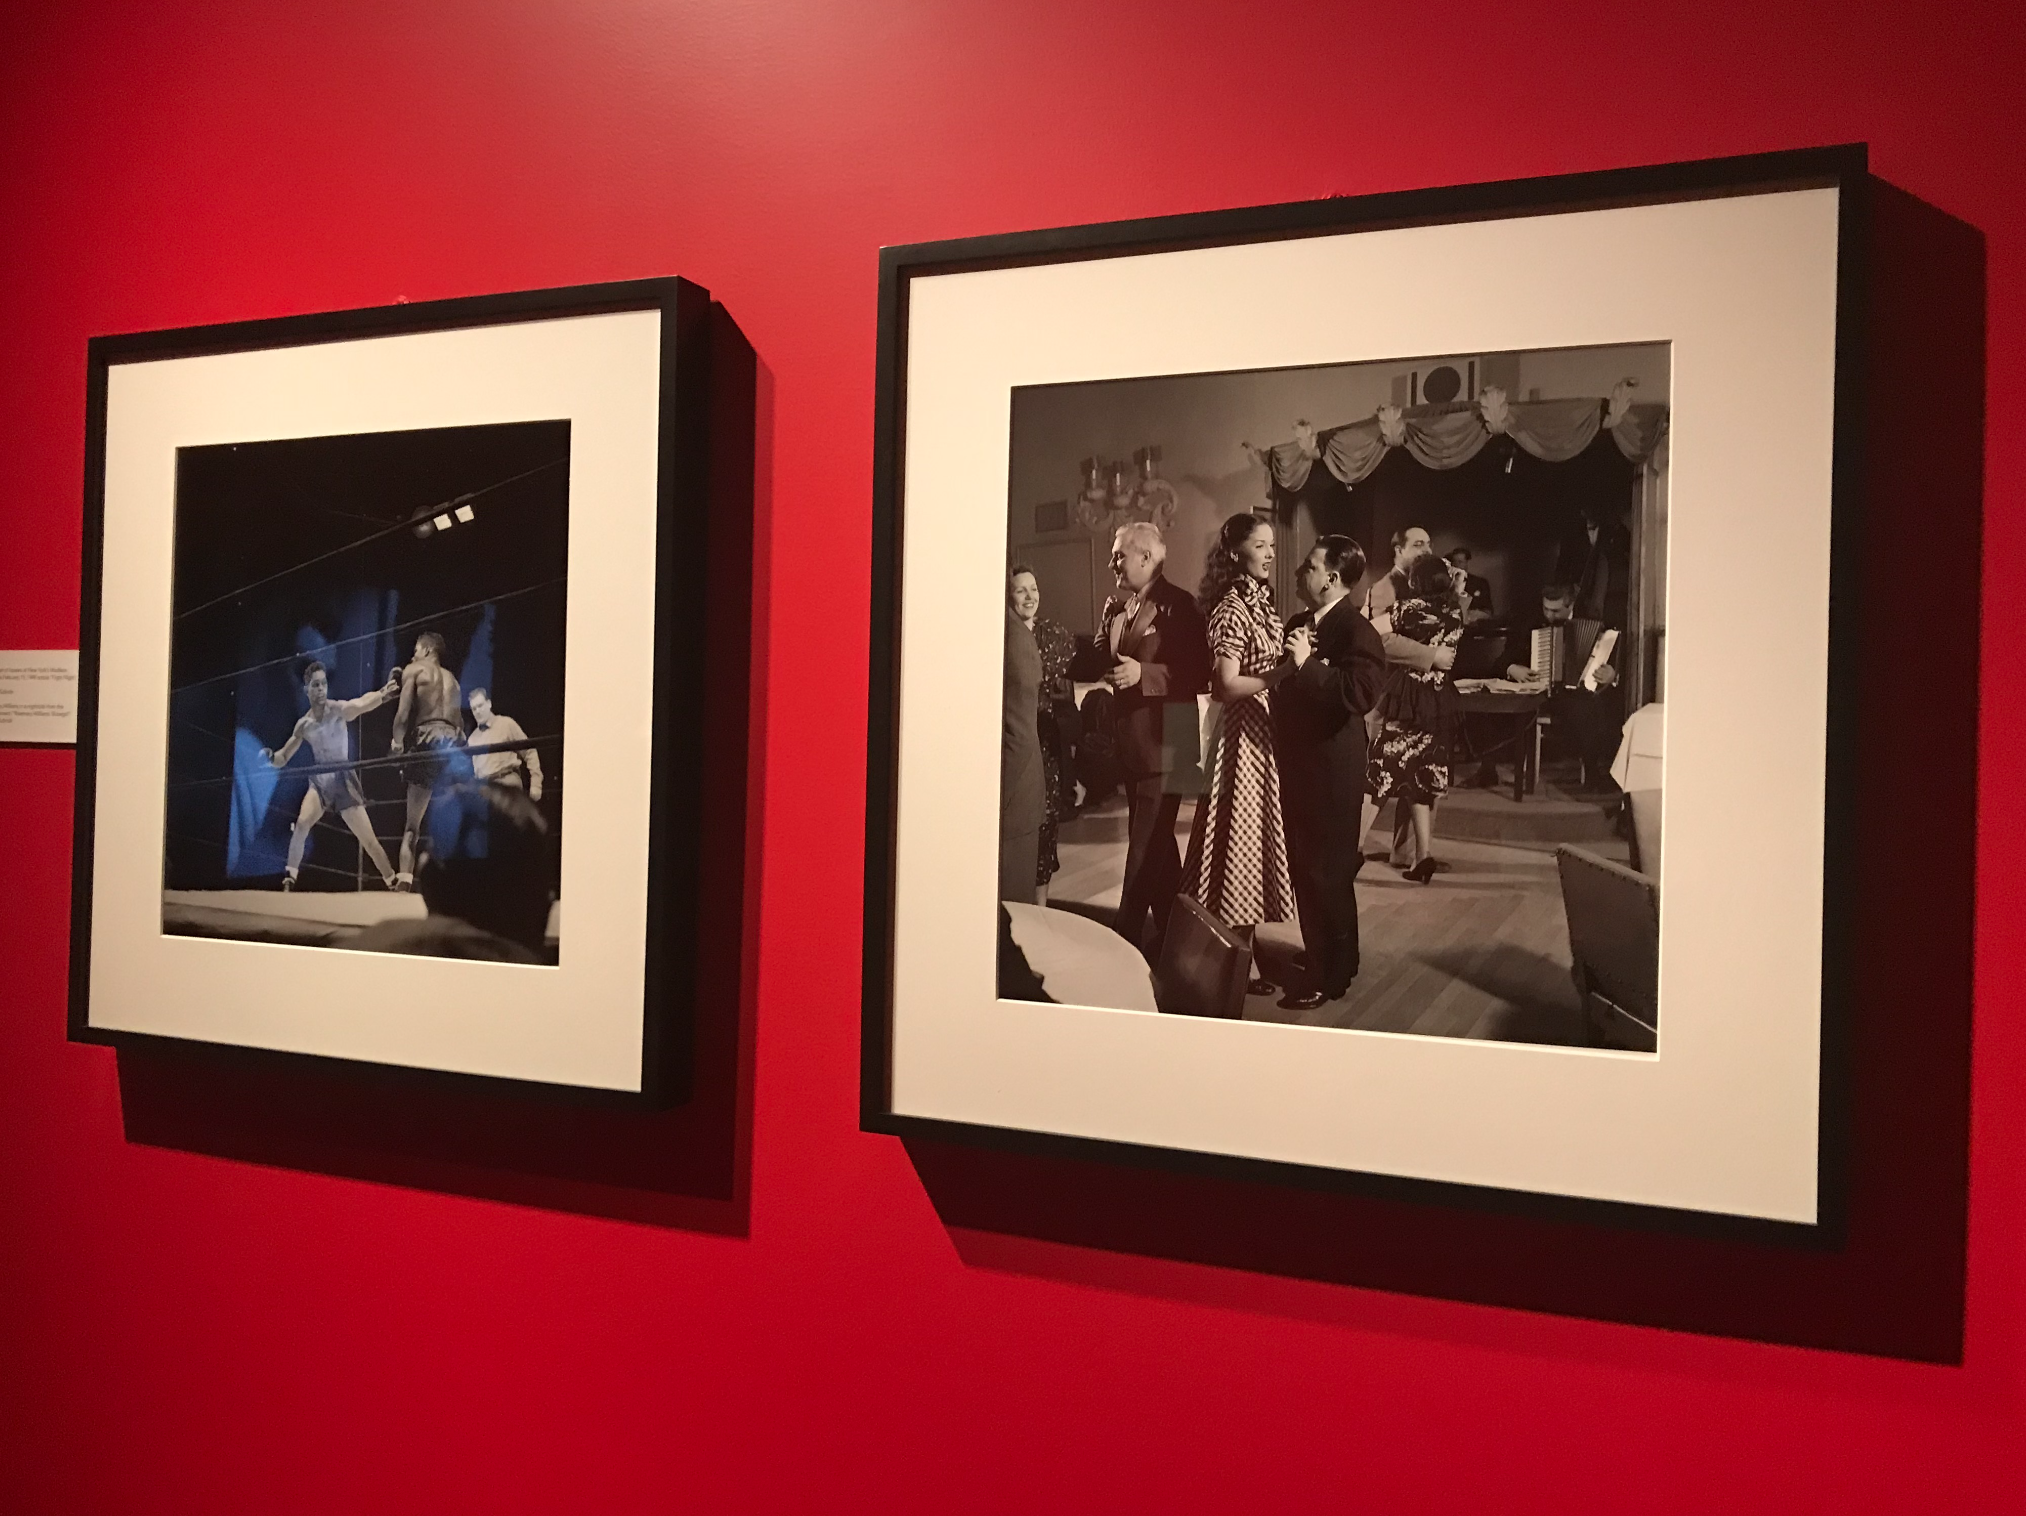 kubrick photographs as shown at the city museum of new yorl